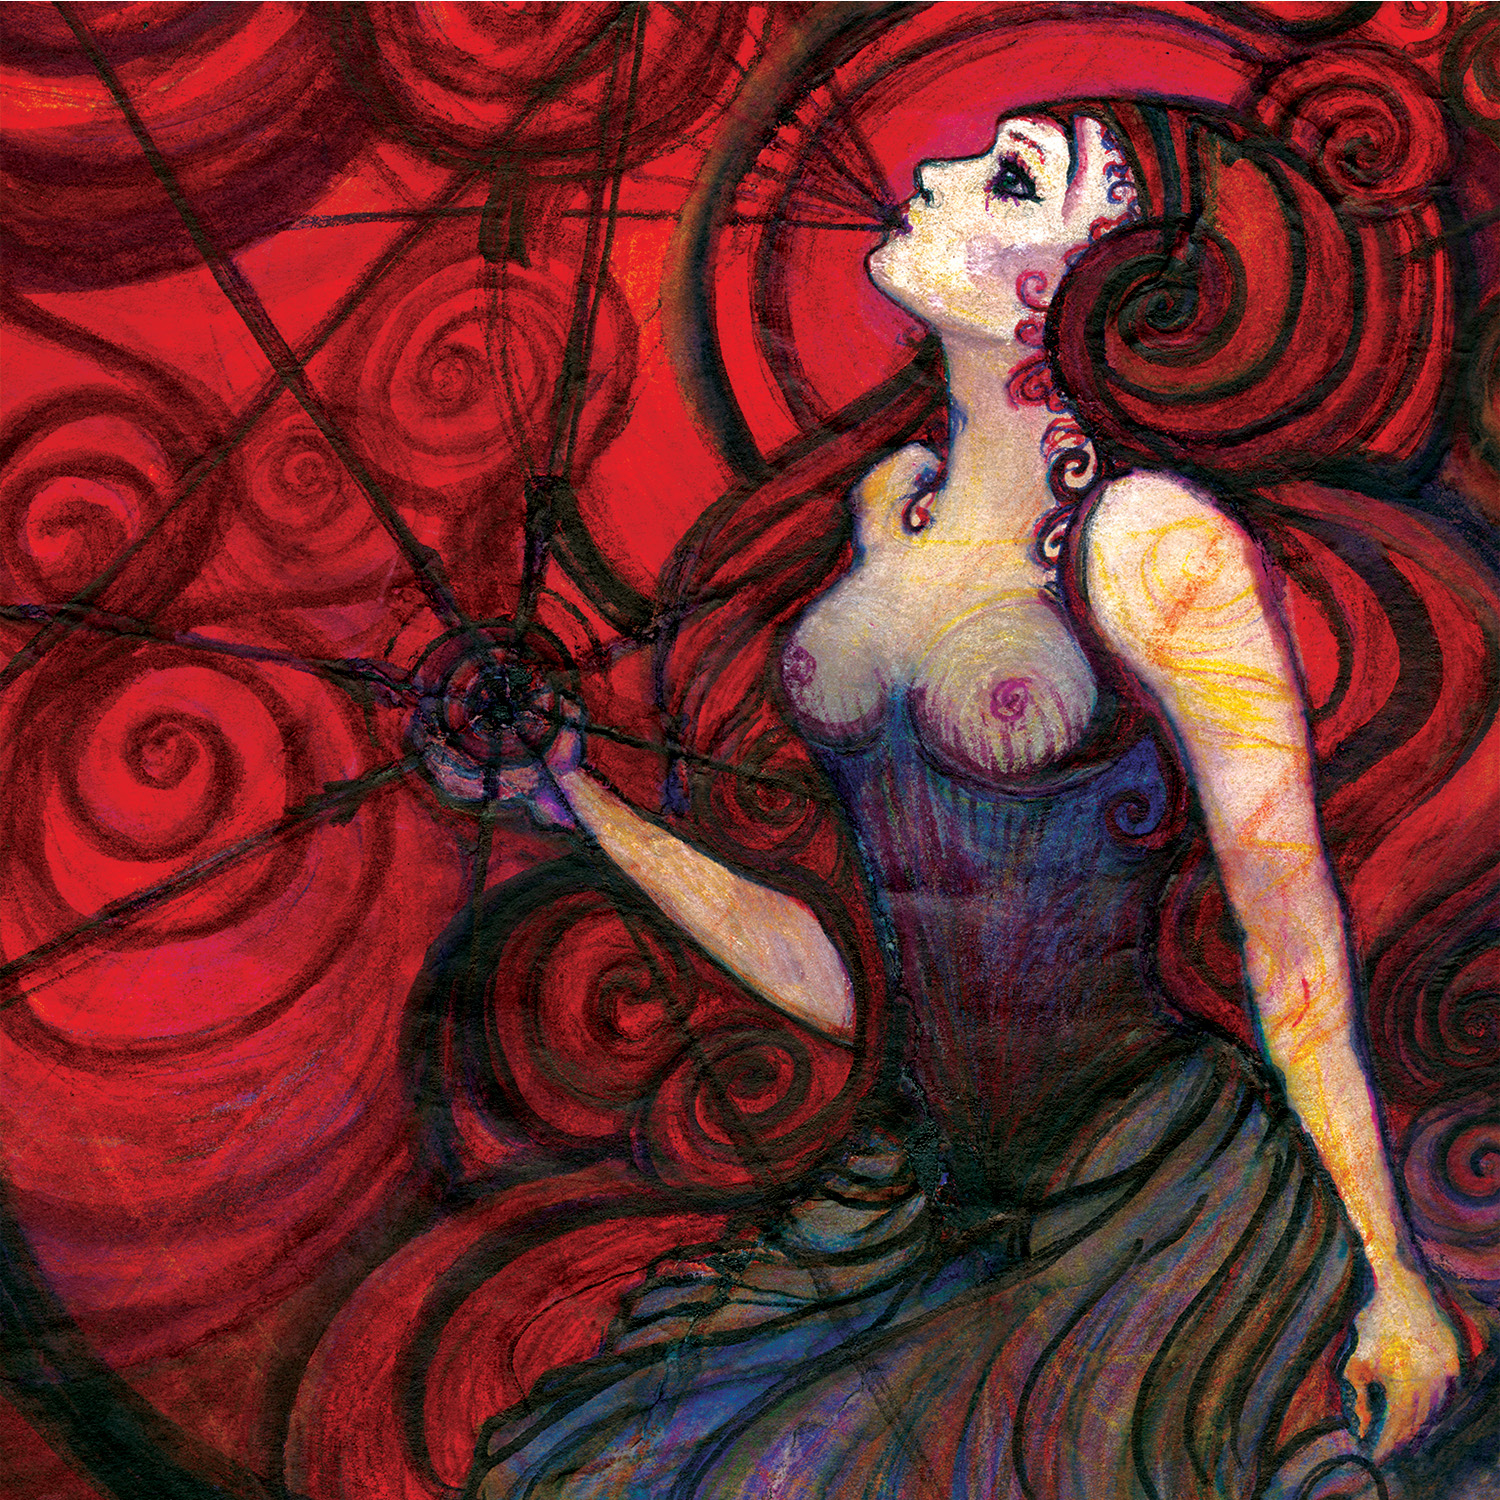 Nachtmystium – The World We Left Behind Review